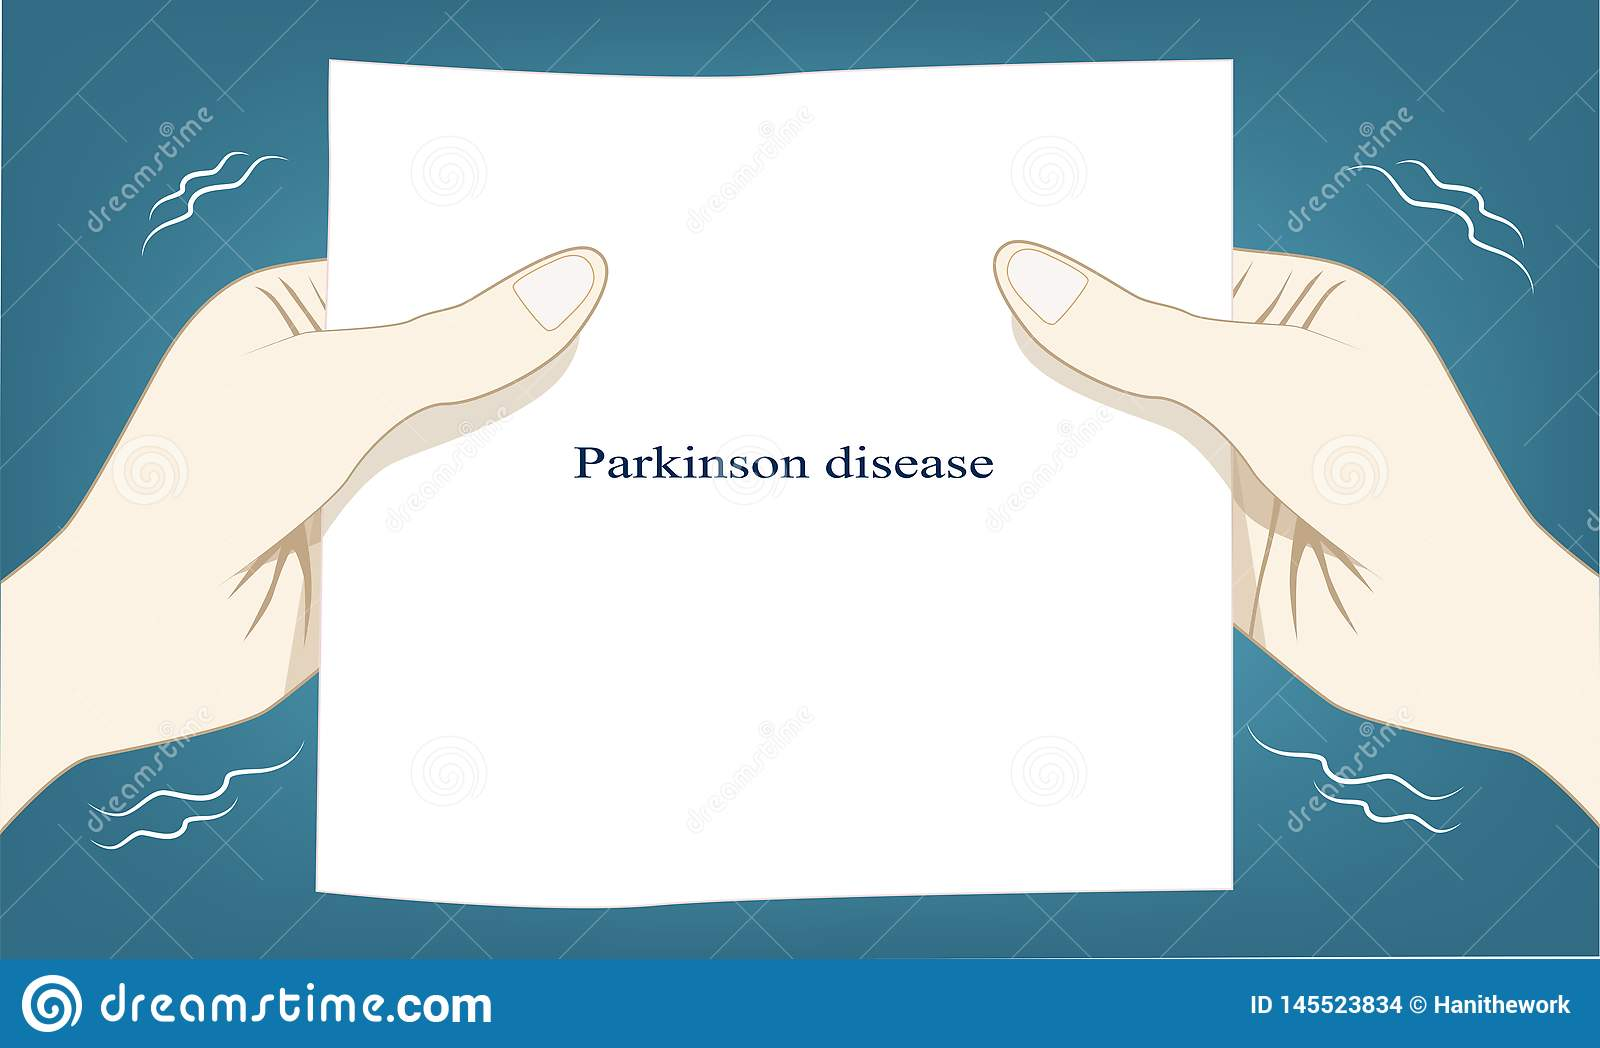 Hand shaking automatic is a cause of Parkinson disease